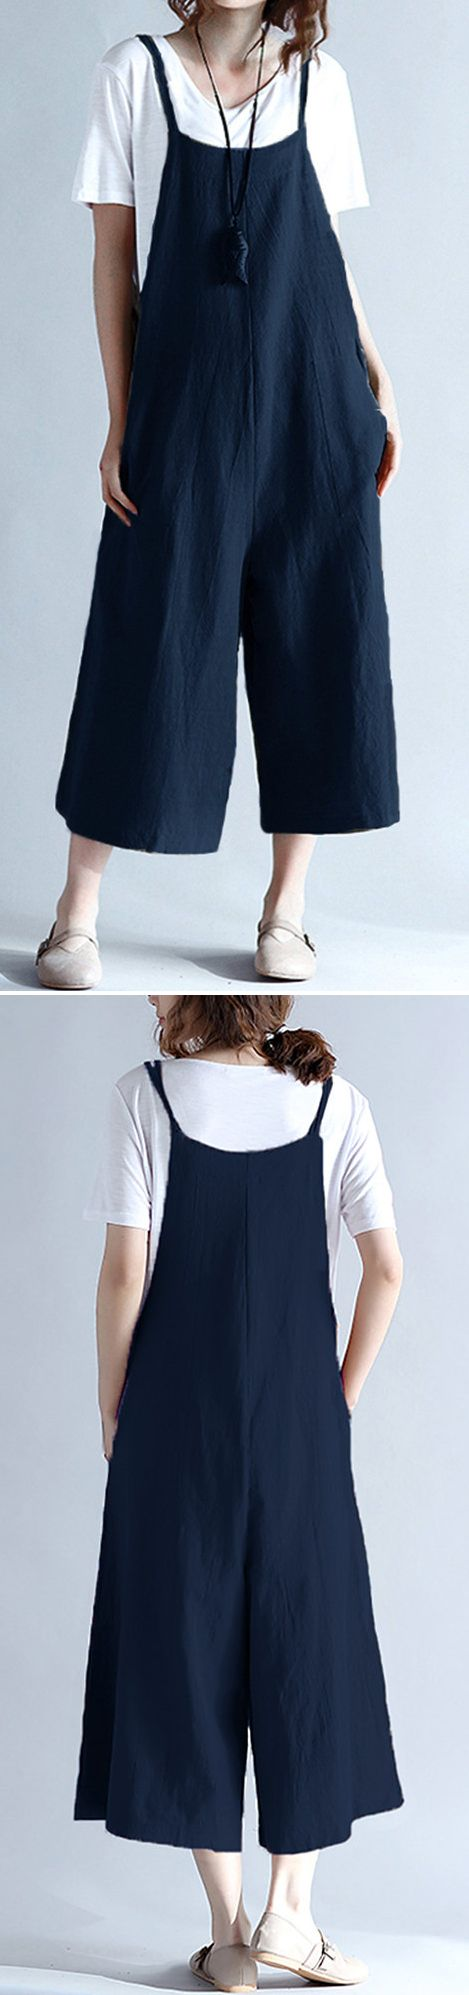 US$ 19.62 Casual Sleeveless Straps Pockets Pure Color Wide Leg Jumpsuits